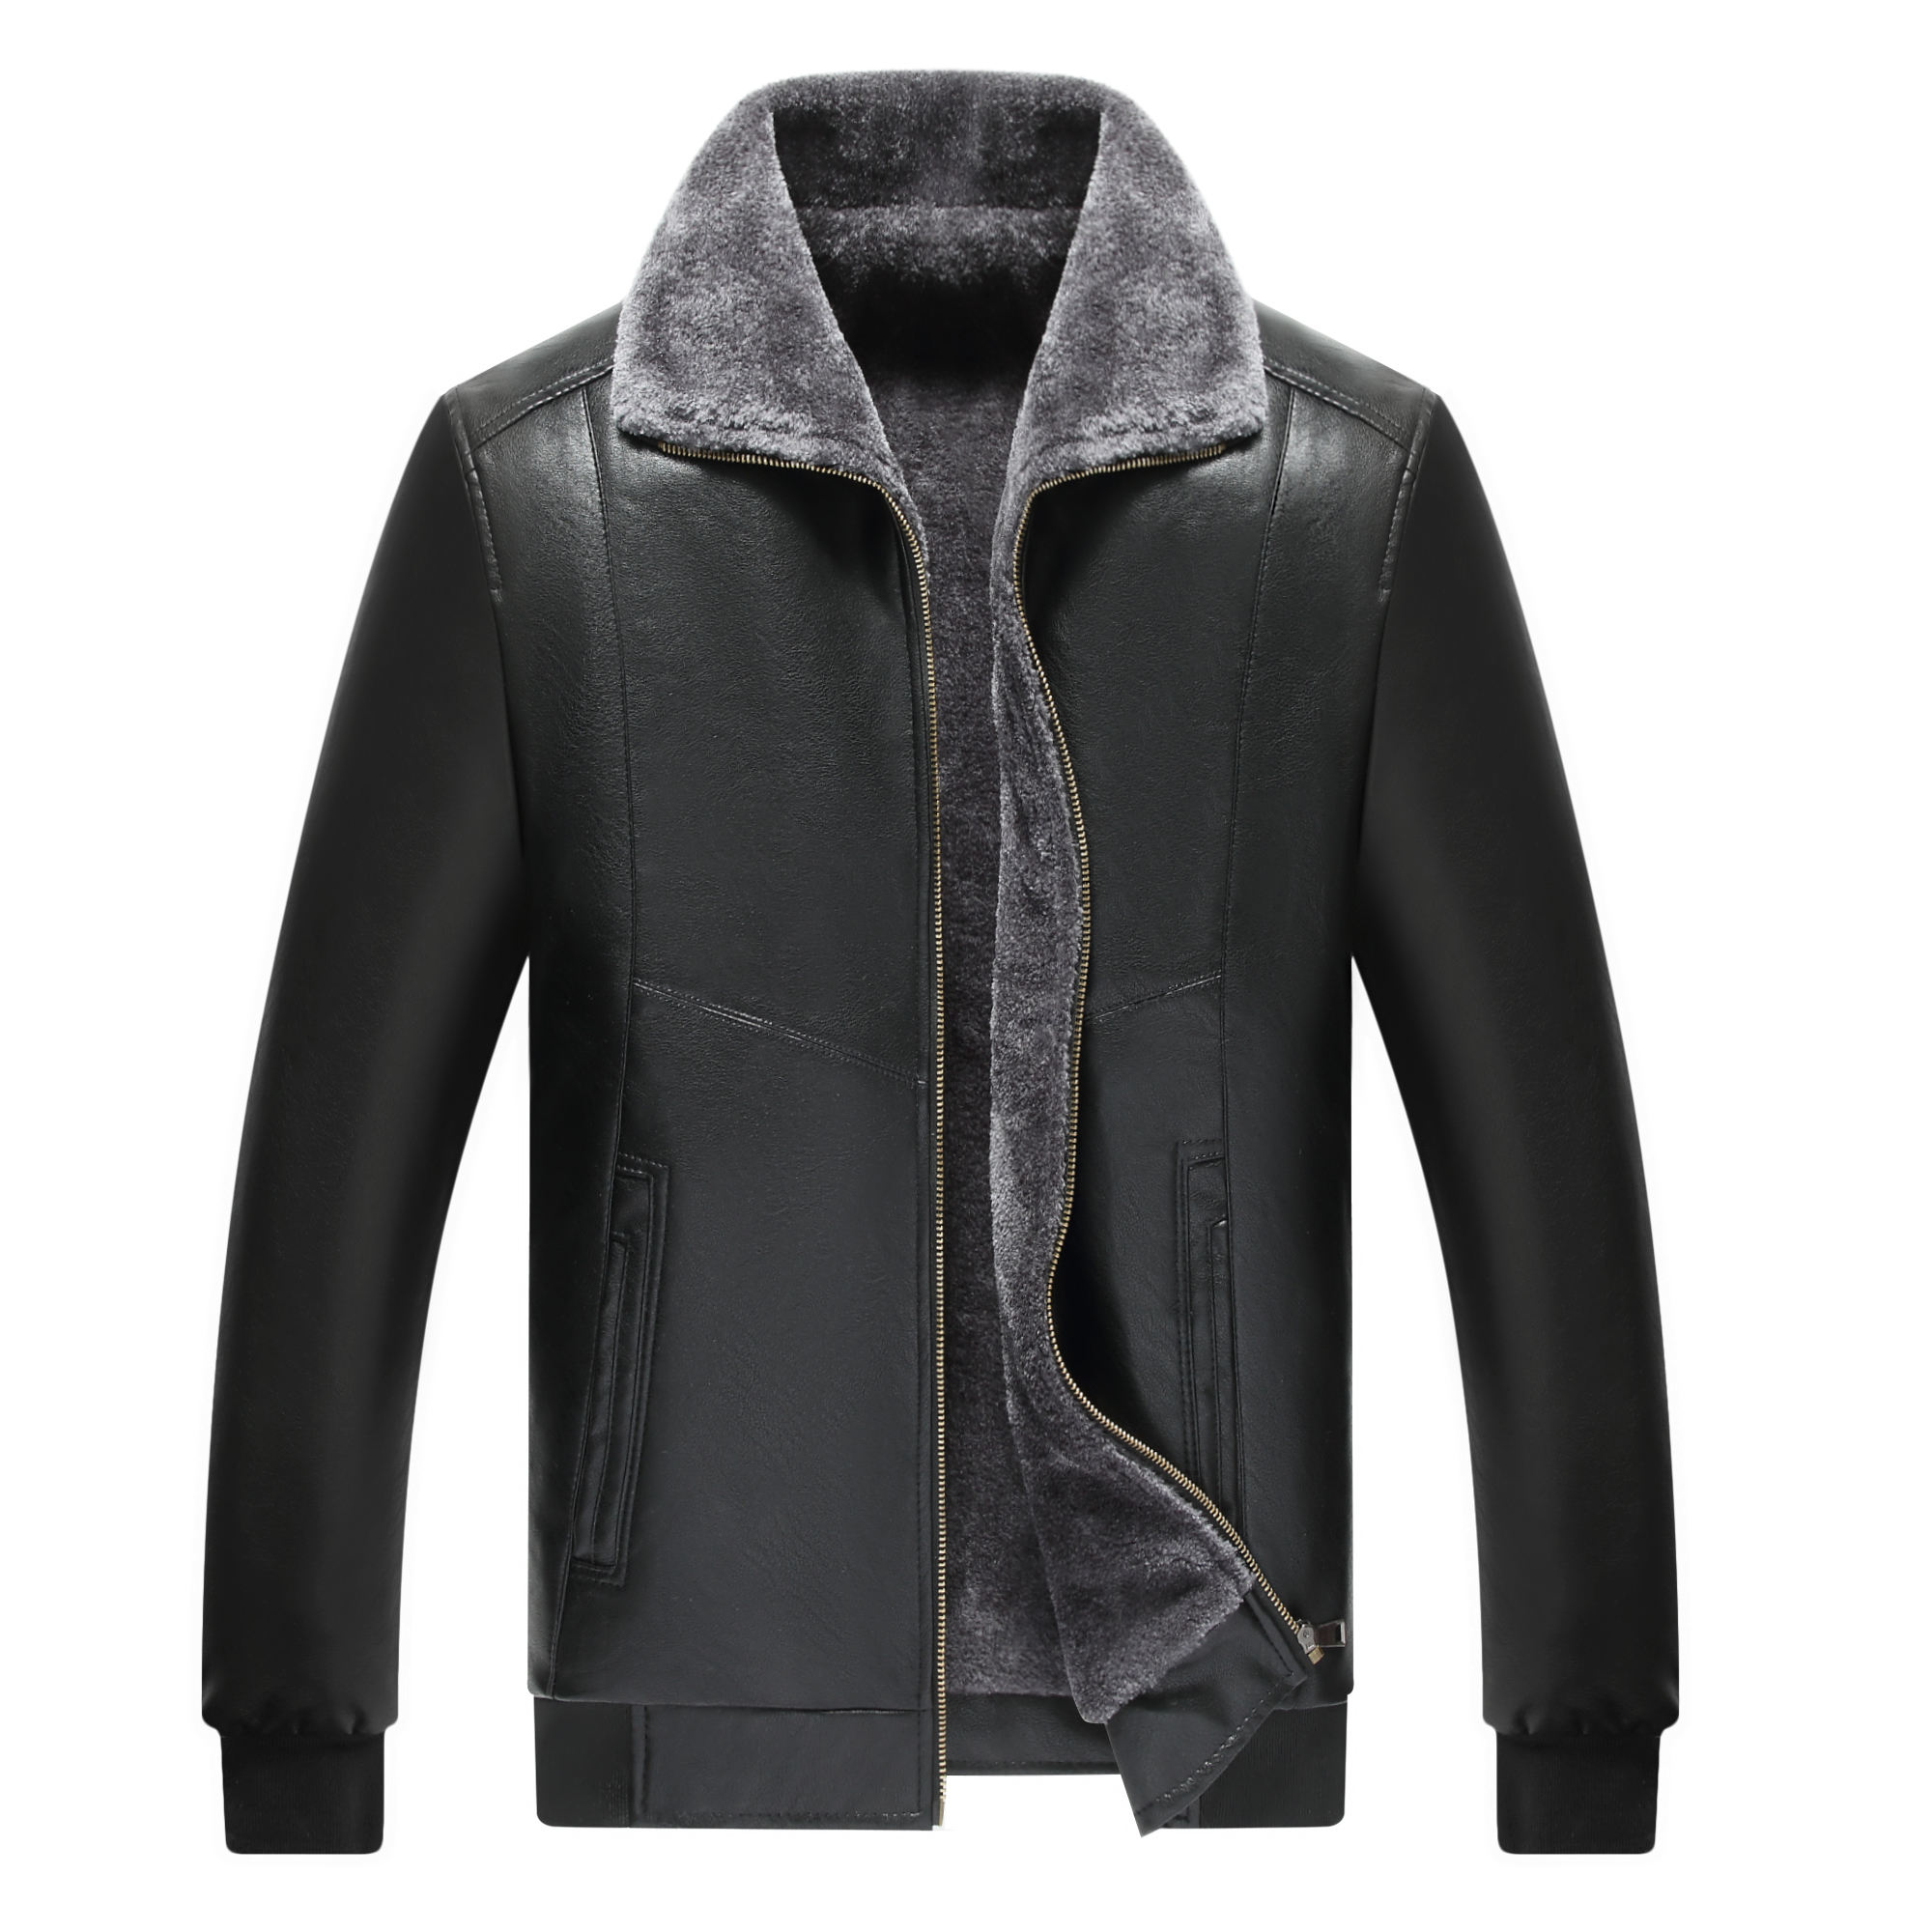 Winter men 's leather jacket fur collar young men' s PU leather jackets